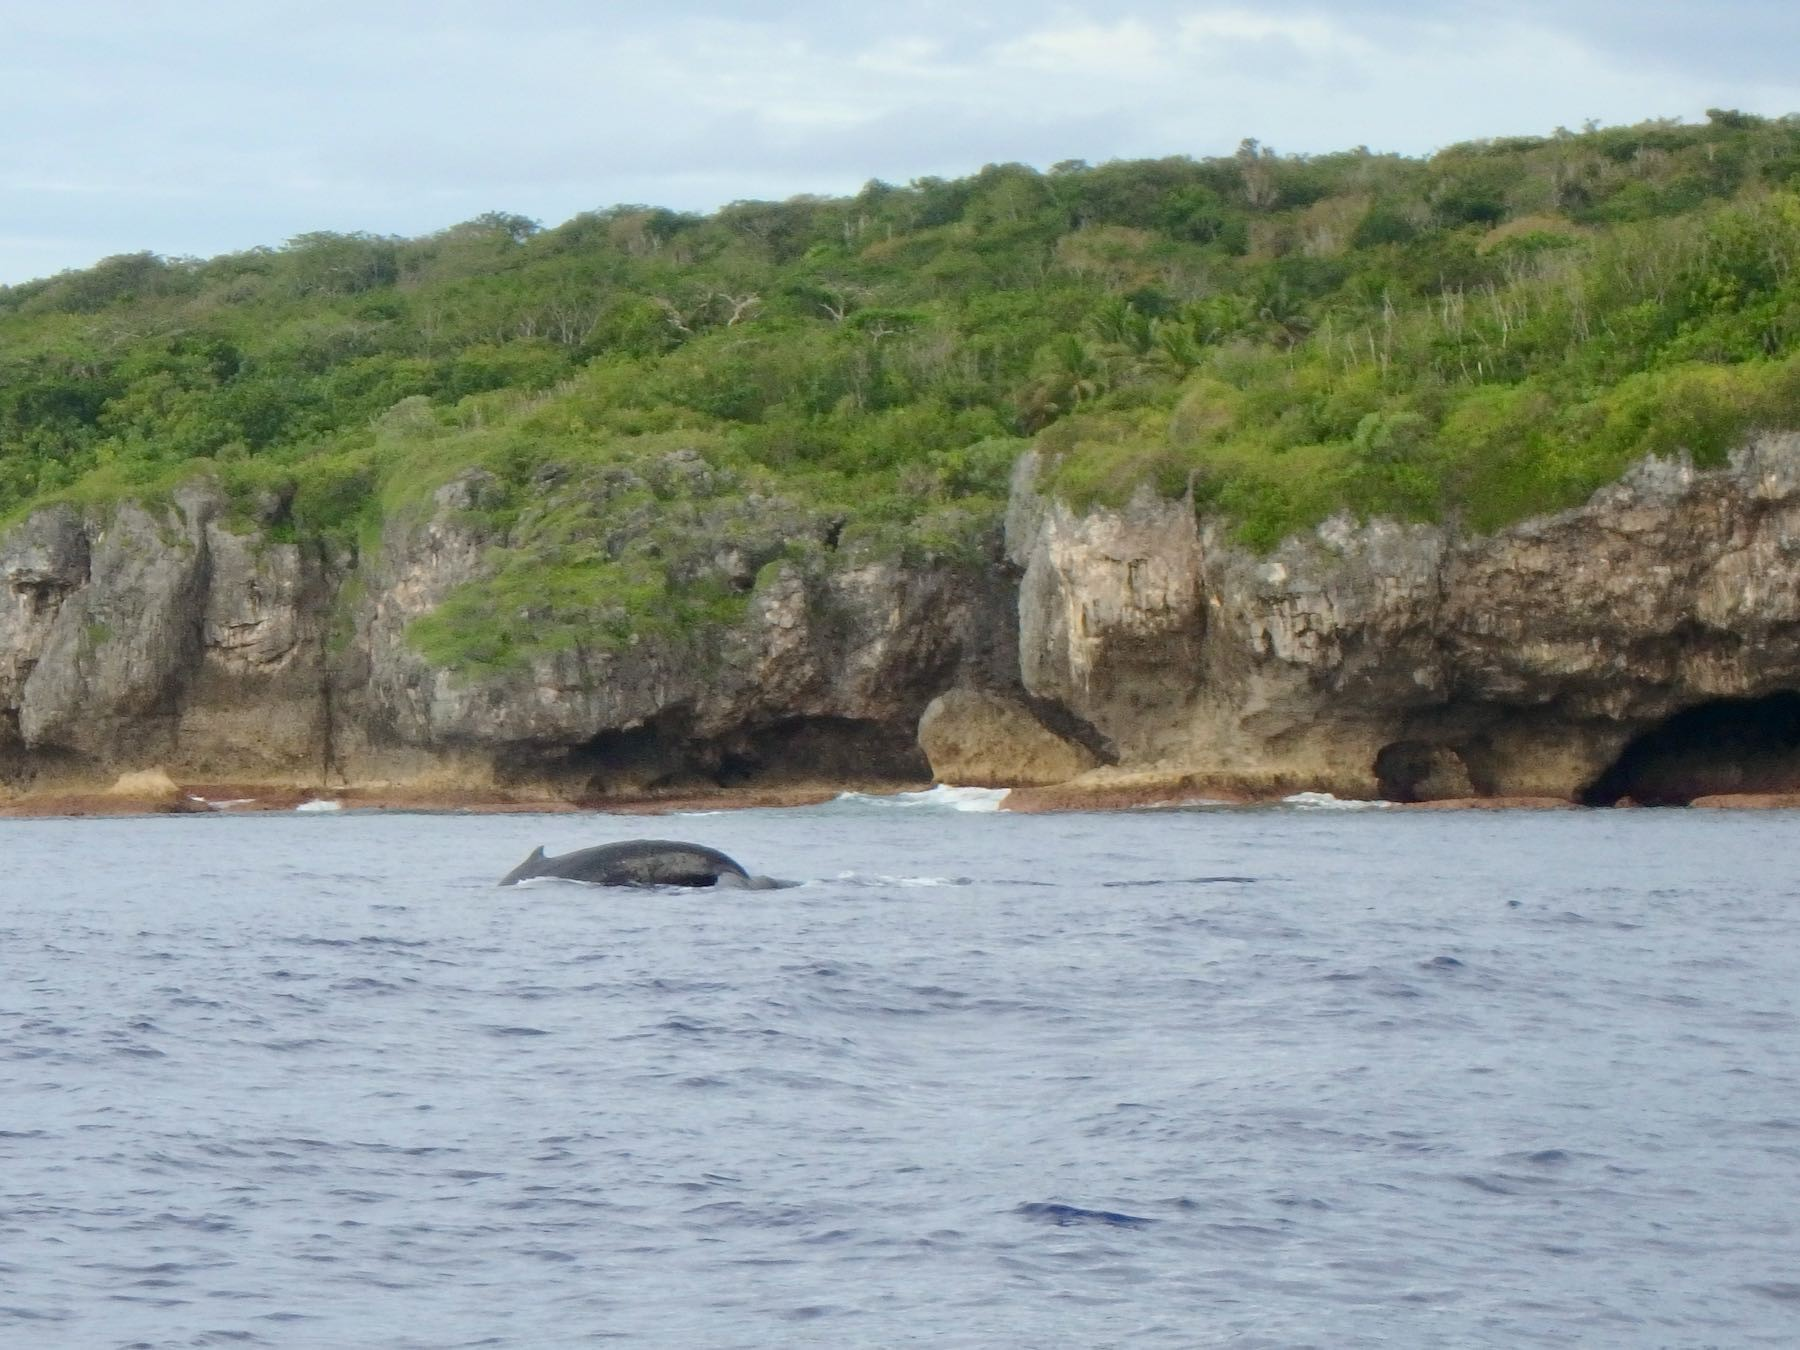 Humback whale breaching in front of cliffs in Niue.